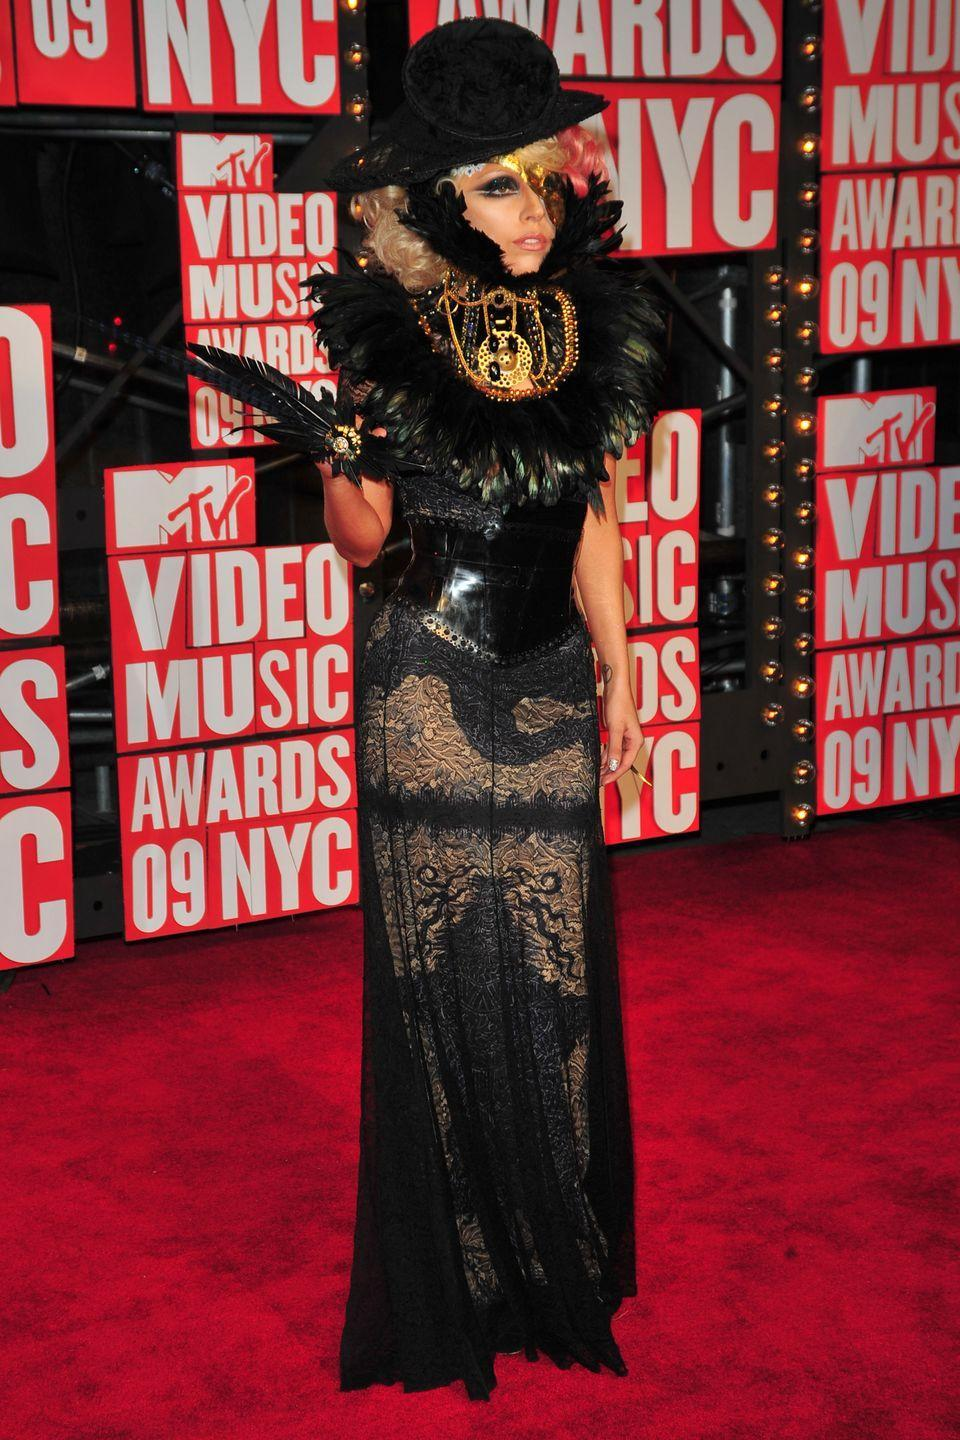 <p>Lady Gaga made a scene in this dramatic black feathered look at the 2009 awards show.</p>